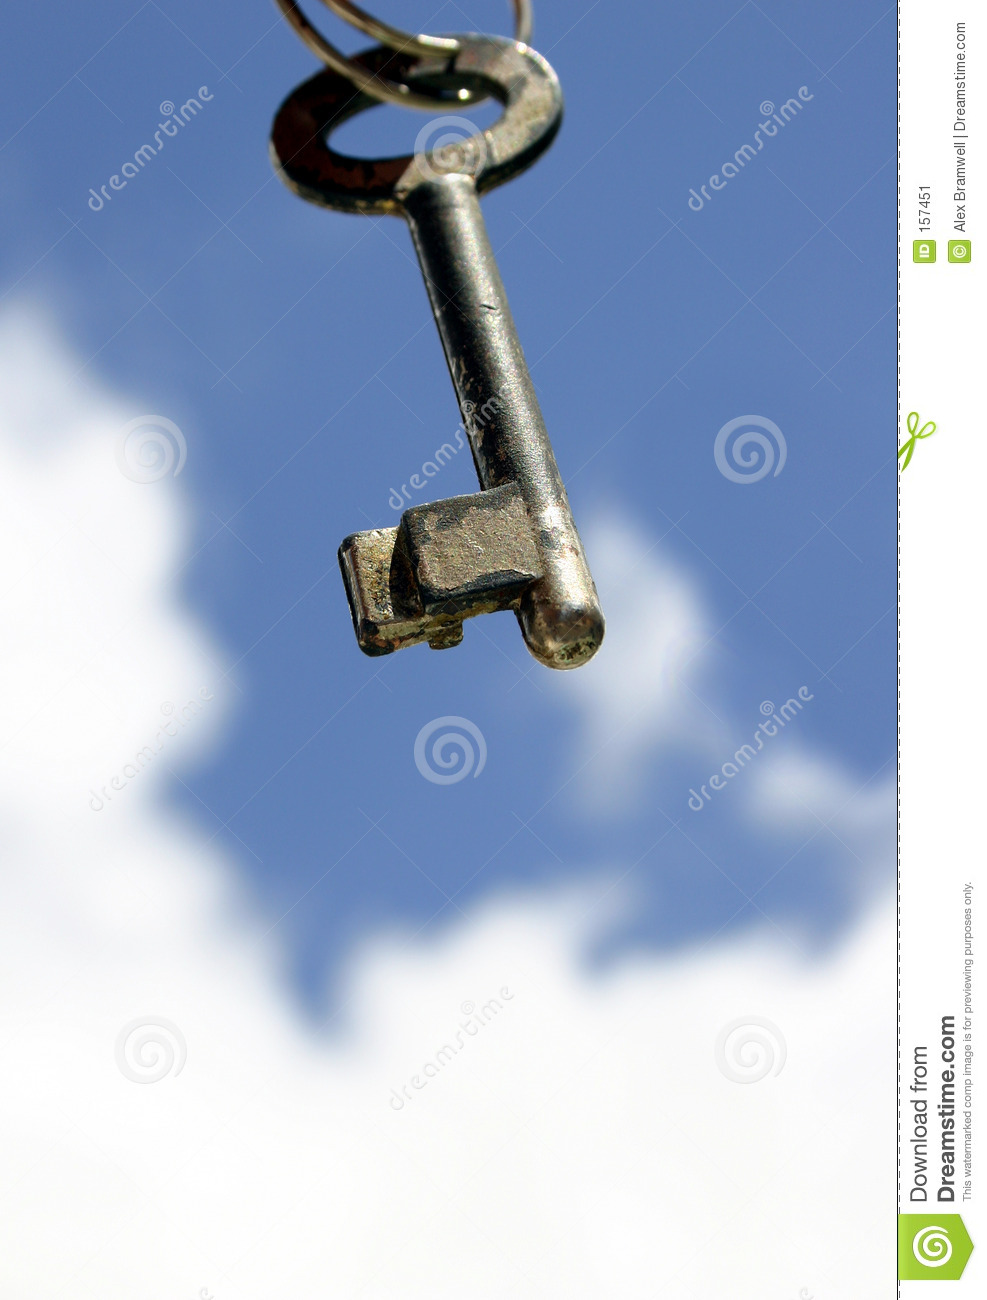 Key out of Reach